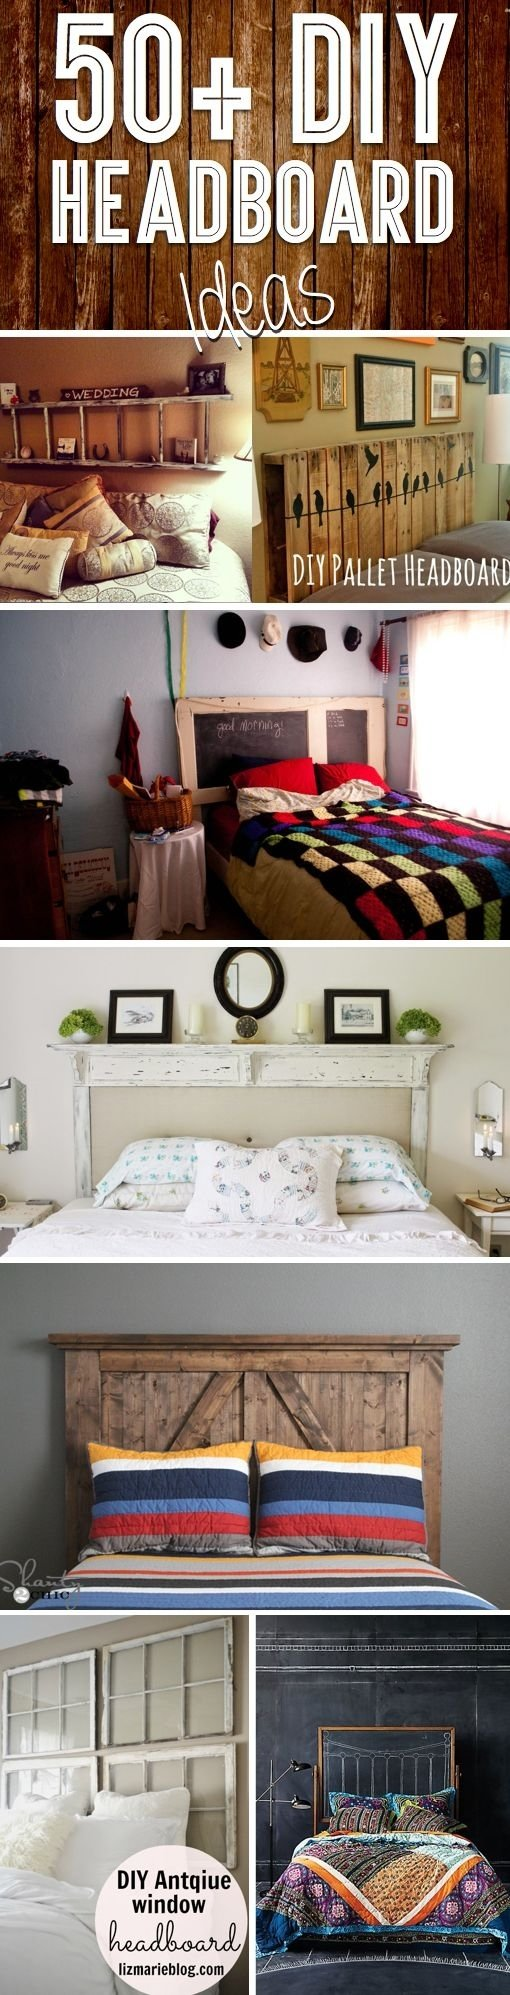 10 Elegant Ideas To Spice Up The Bedroom 2021